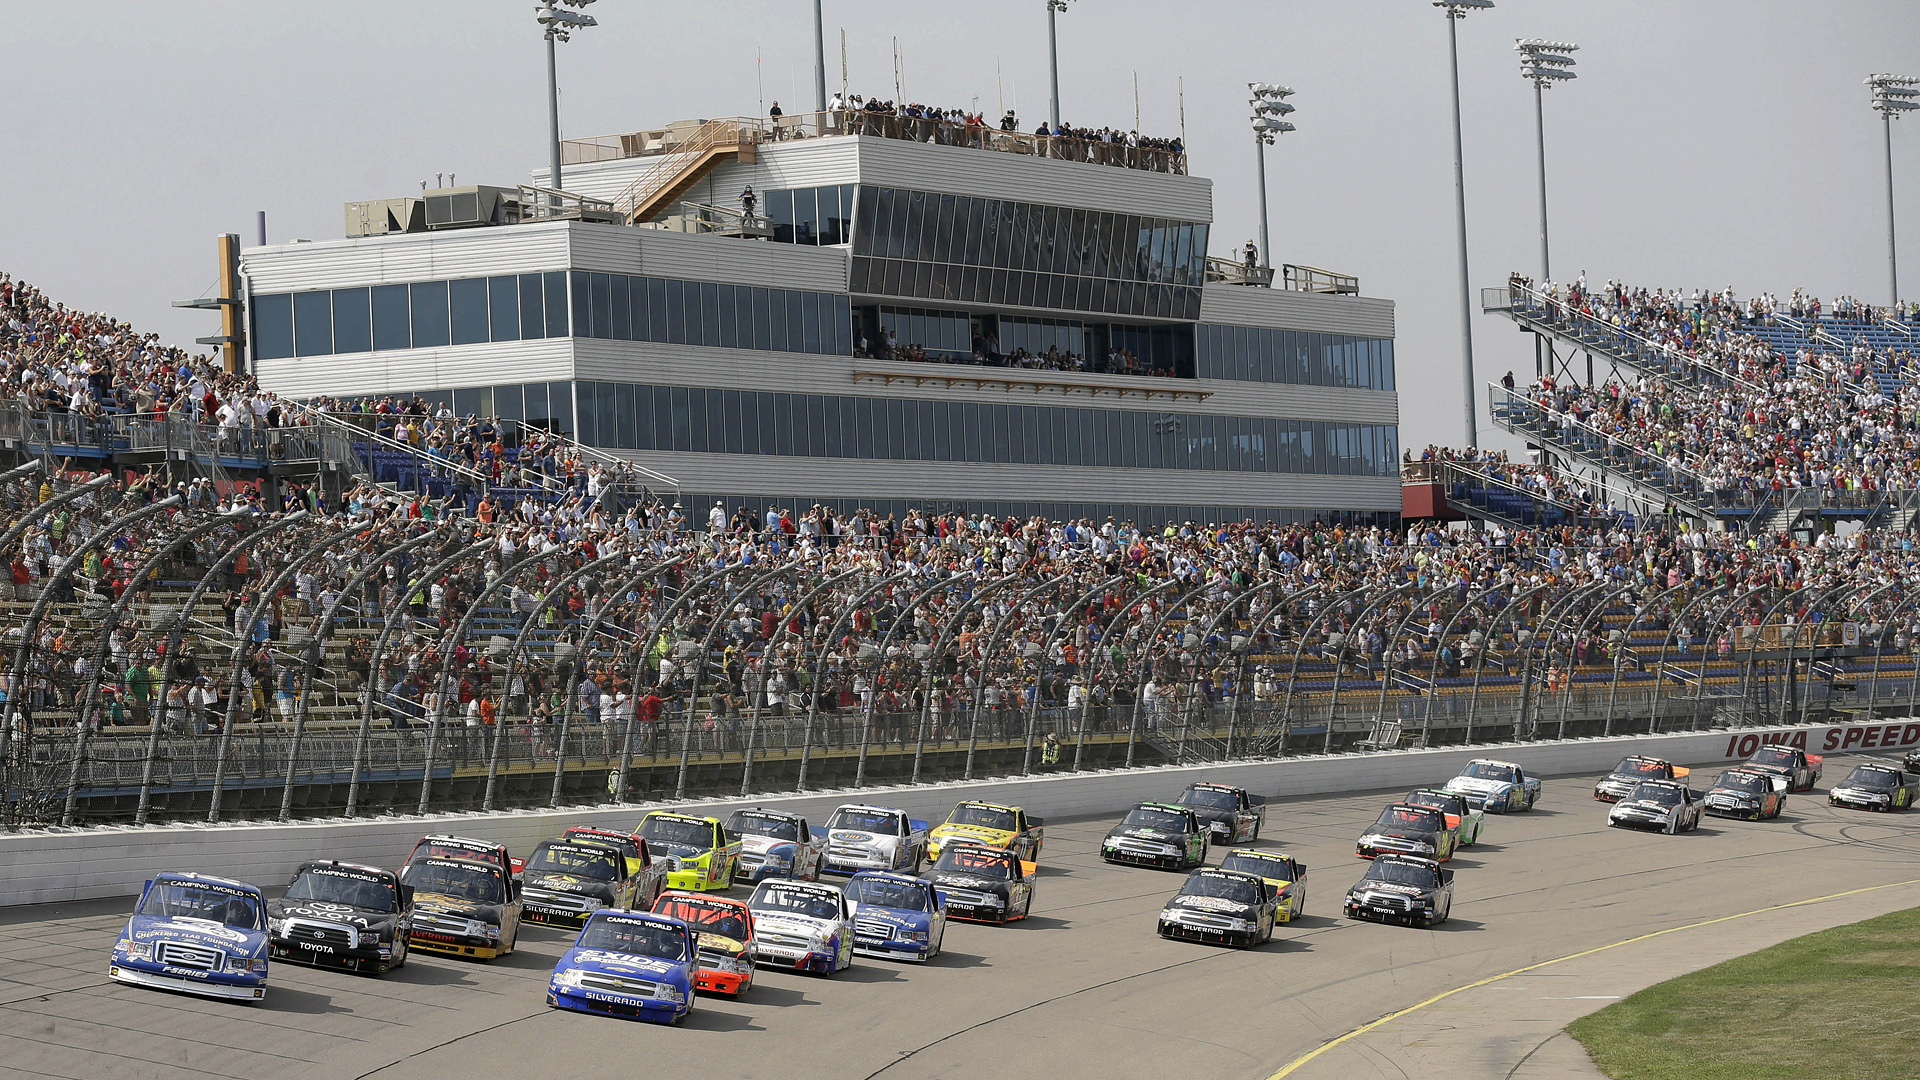 NASCAR buys Iowa Speedway, doesn't commit to Cup race   Sporting News